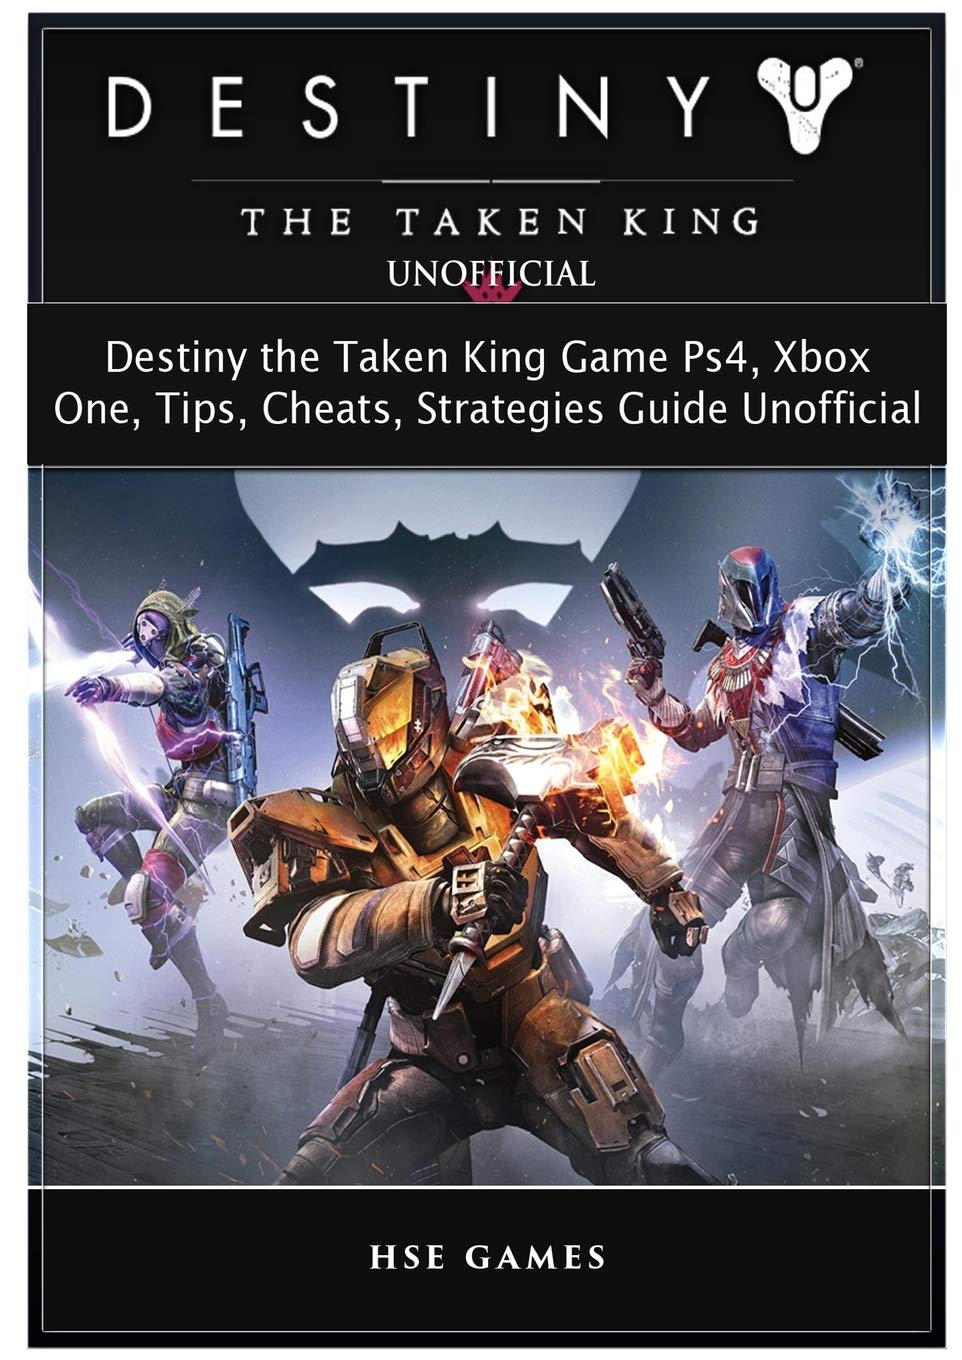 Destiny the Taken King Game Ps4, Xbox One, Tips, Cheats ...